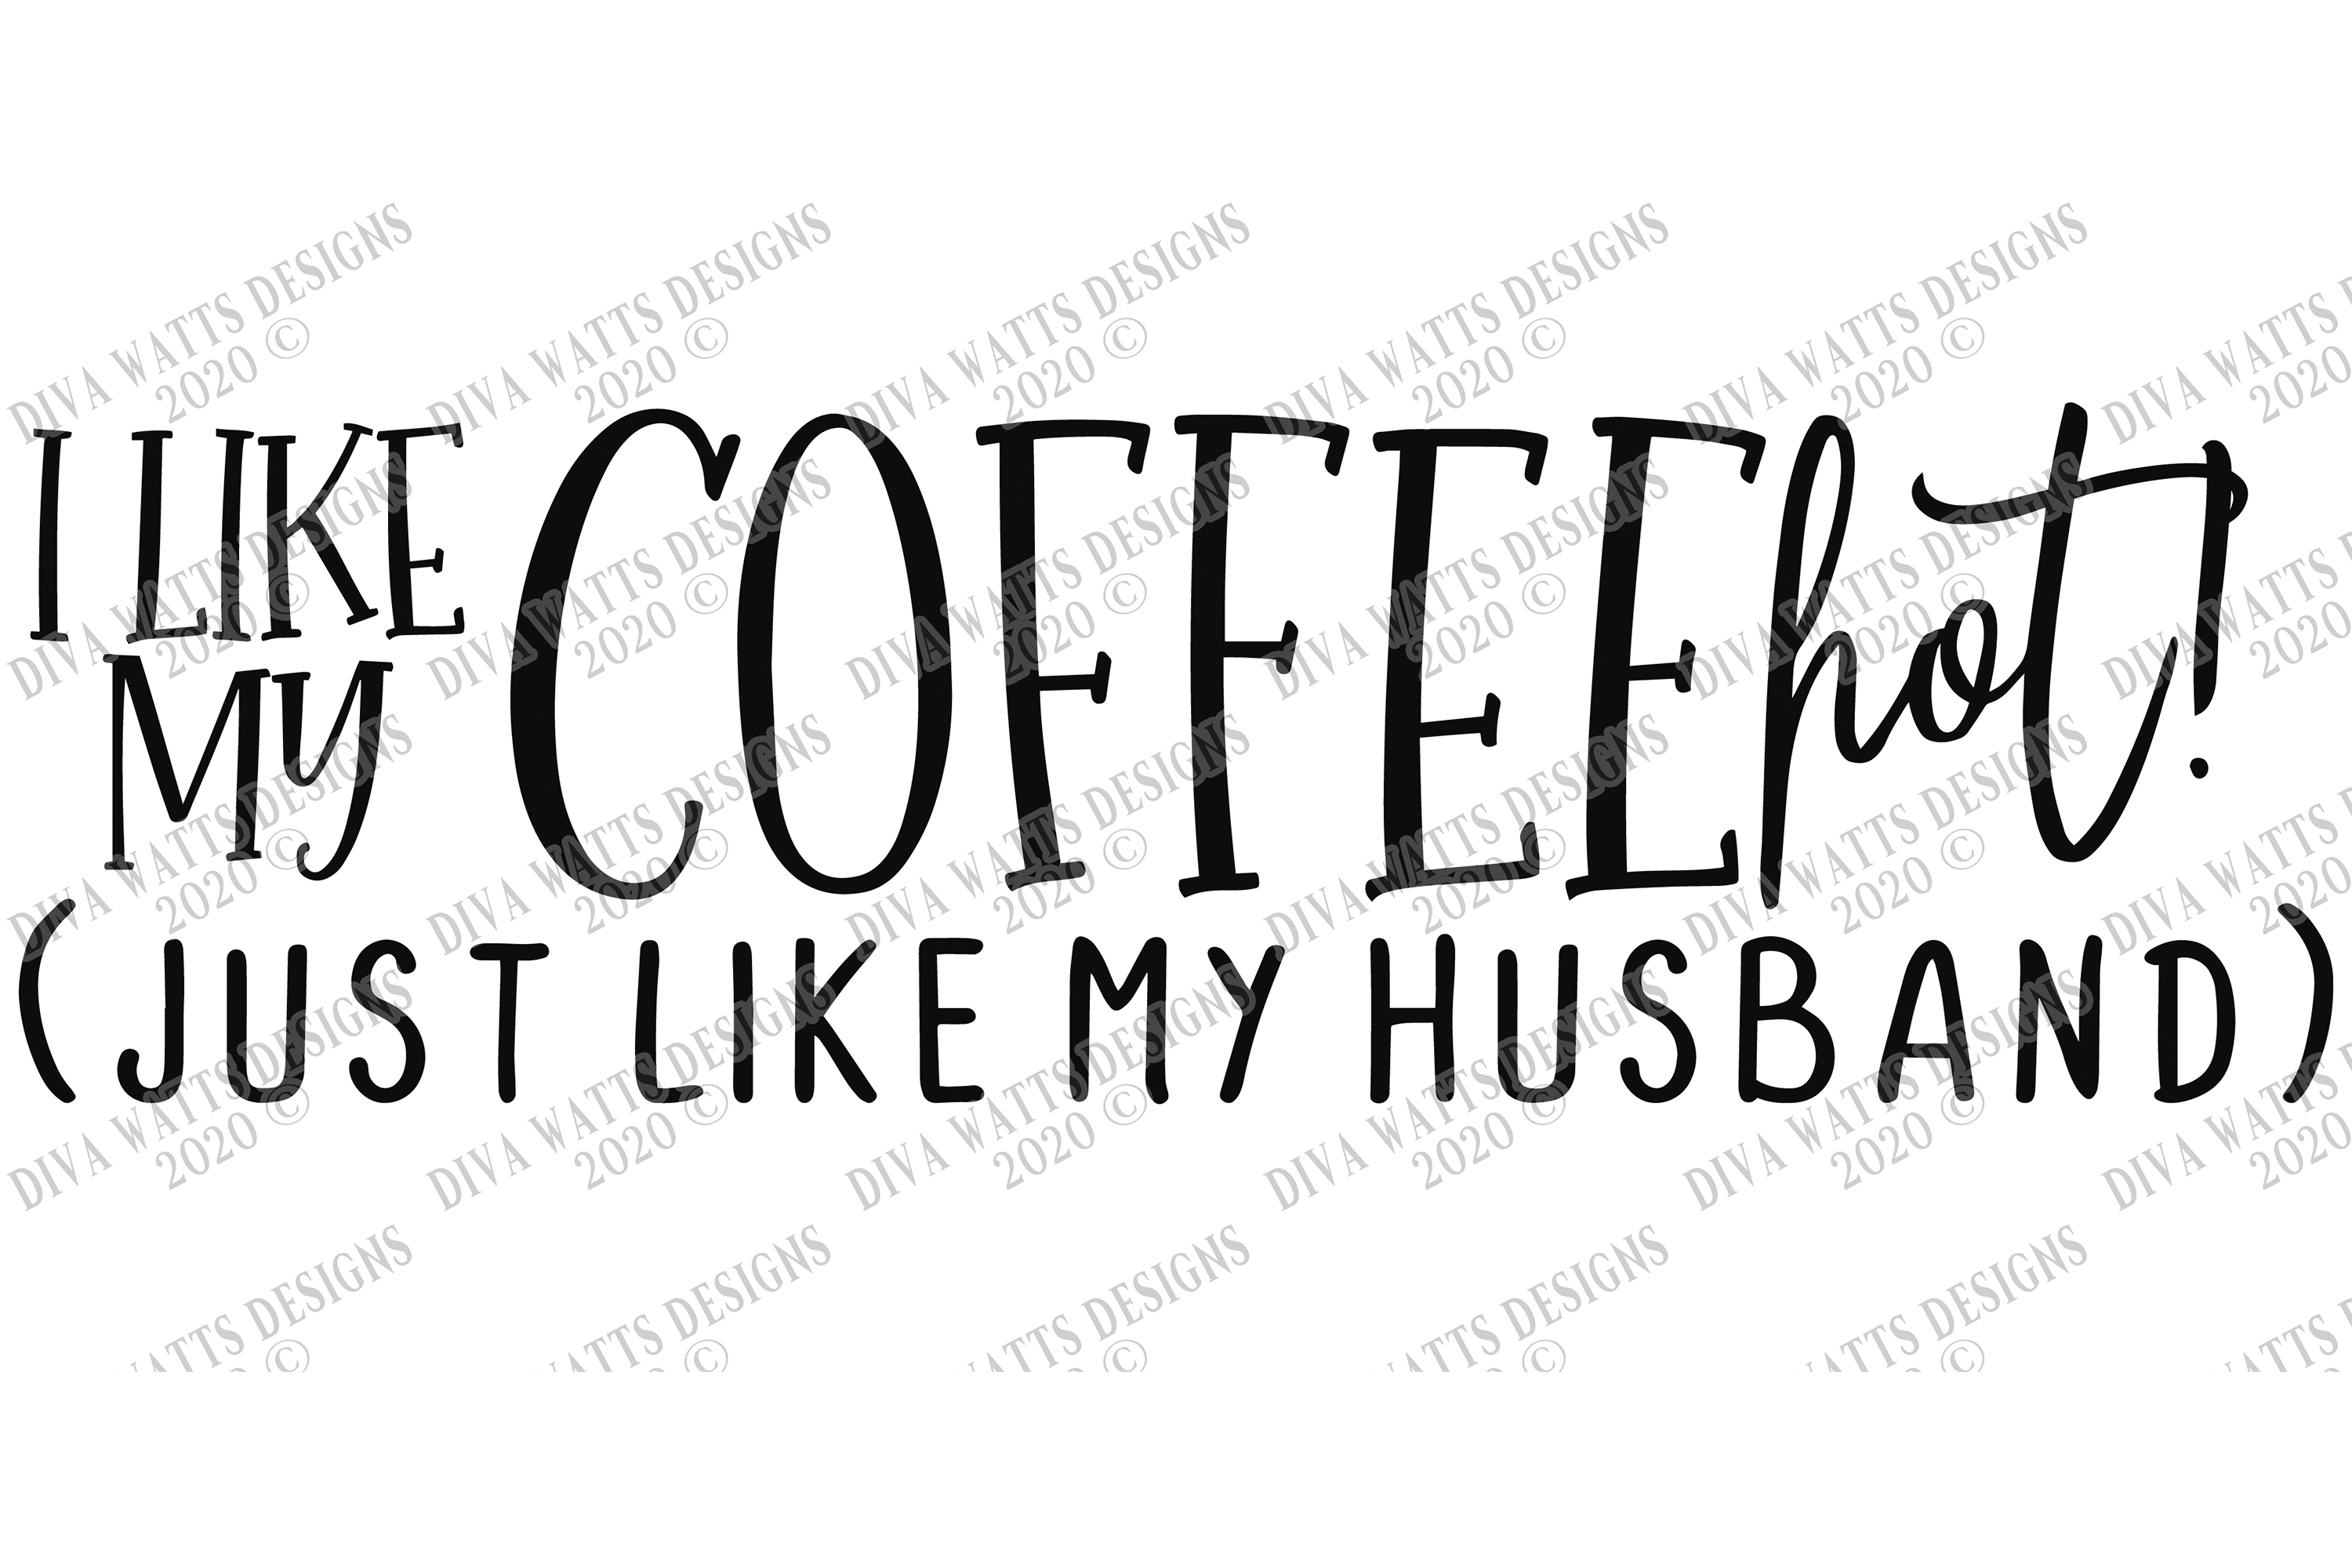 I Like My Coffee HOT! Like My Husband - Coffee Bar Humor SVG example image 3